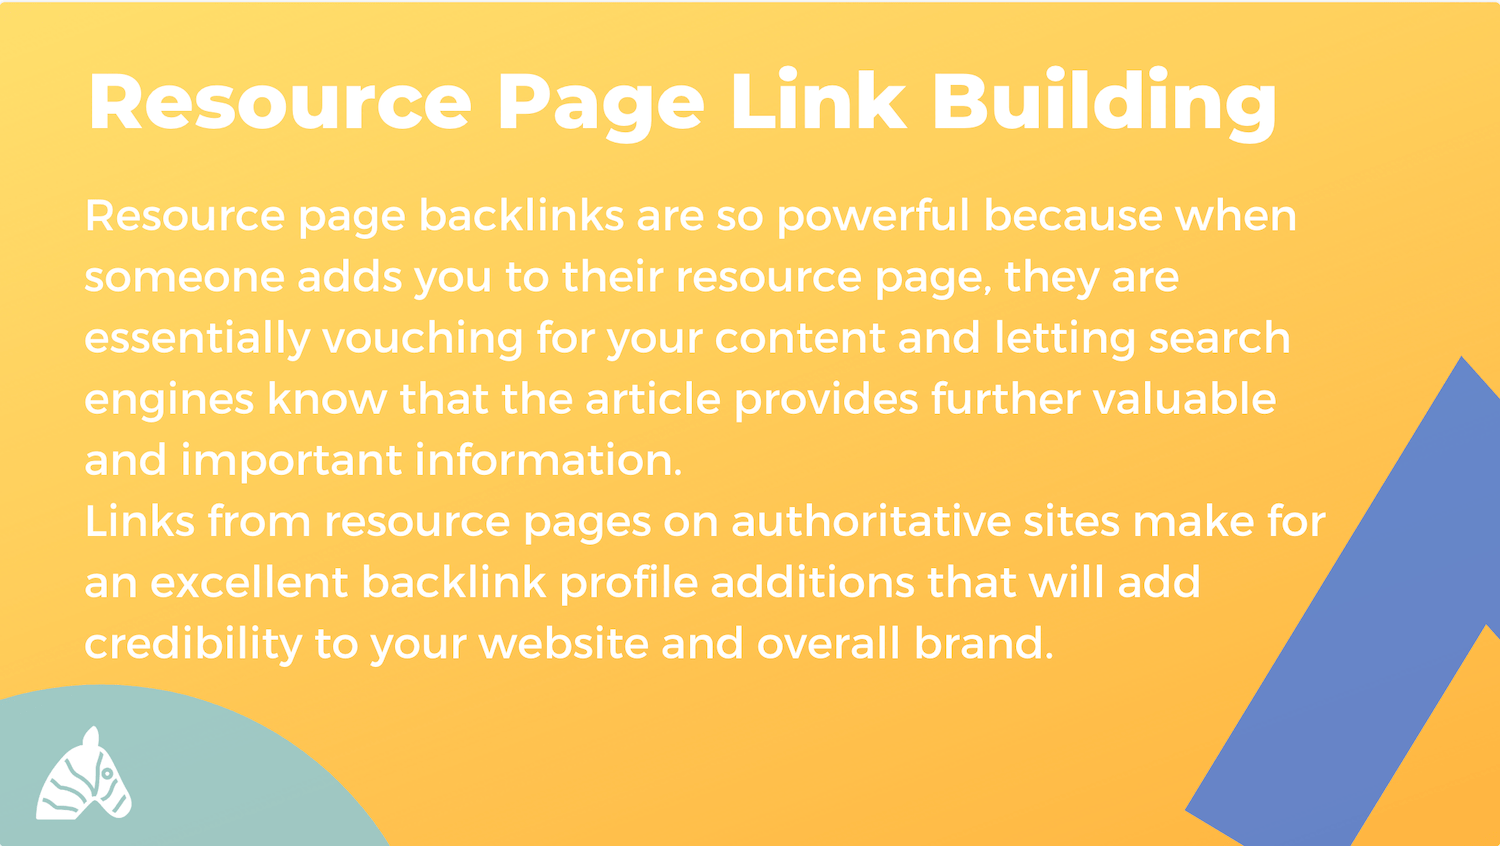 resource page link building image